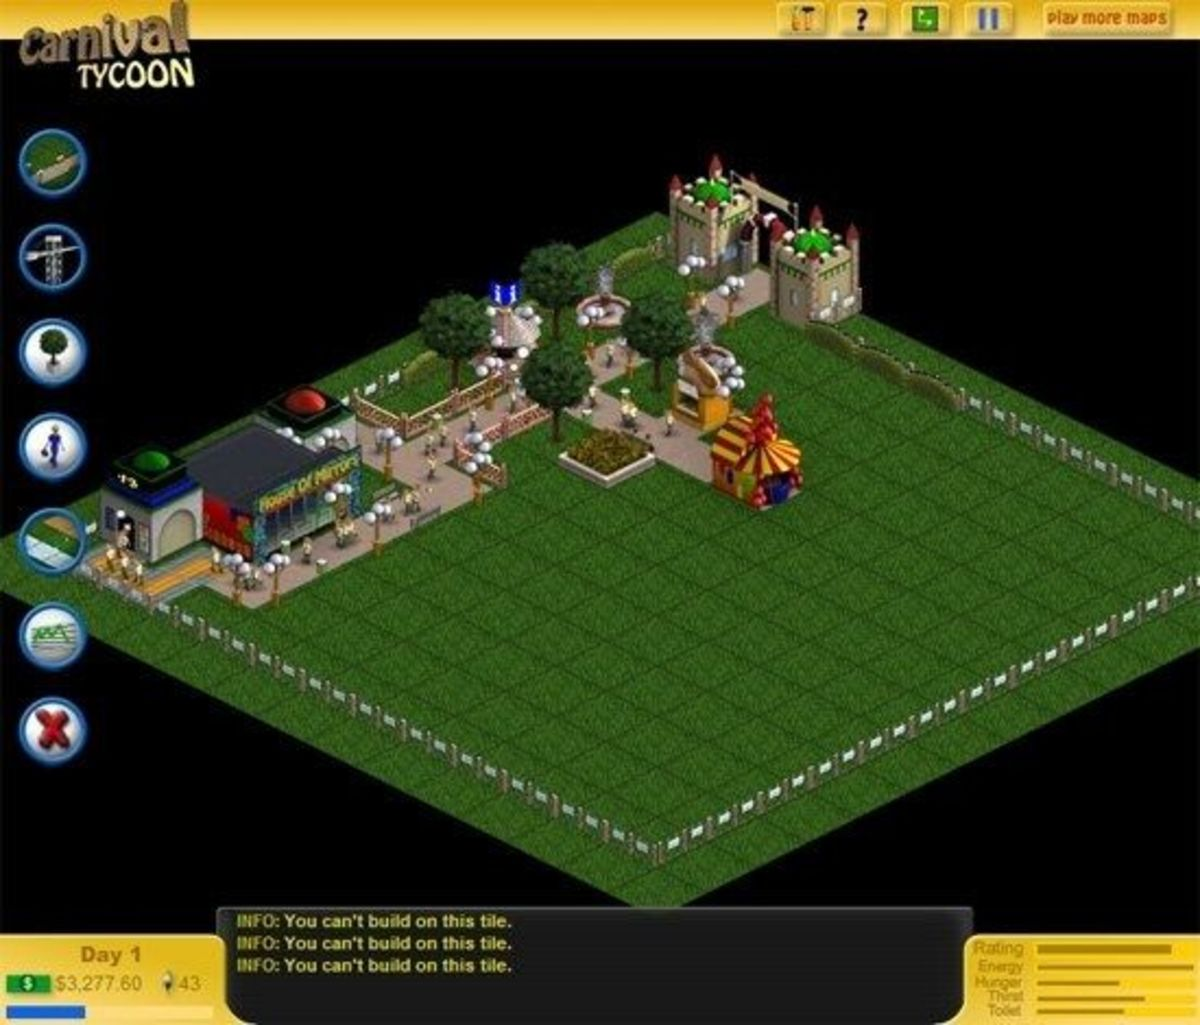 carnival-tycoon-game